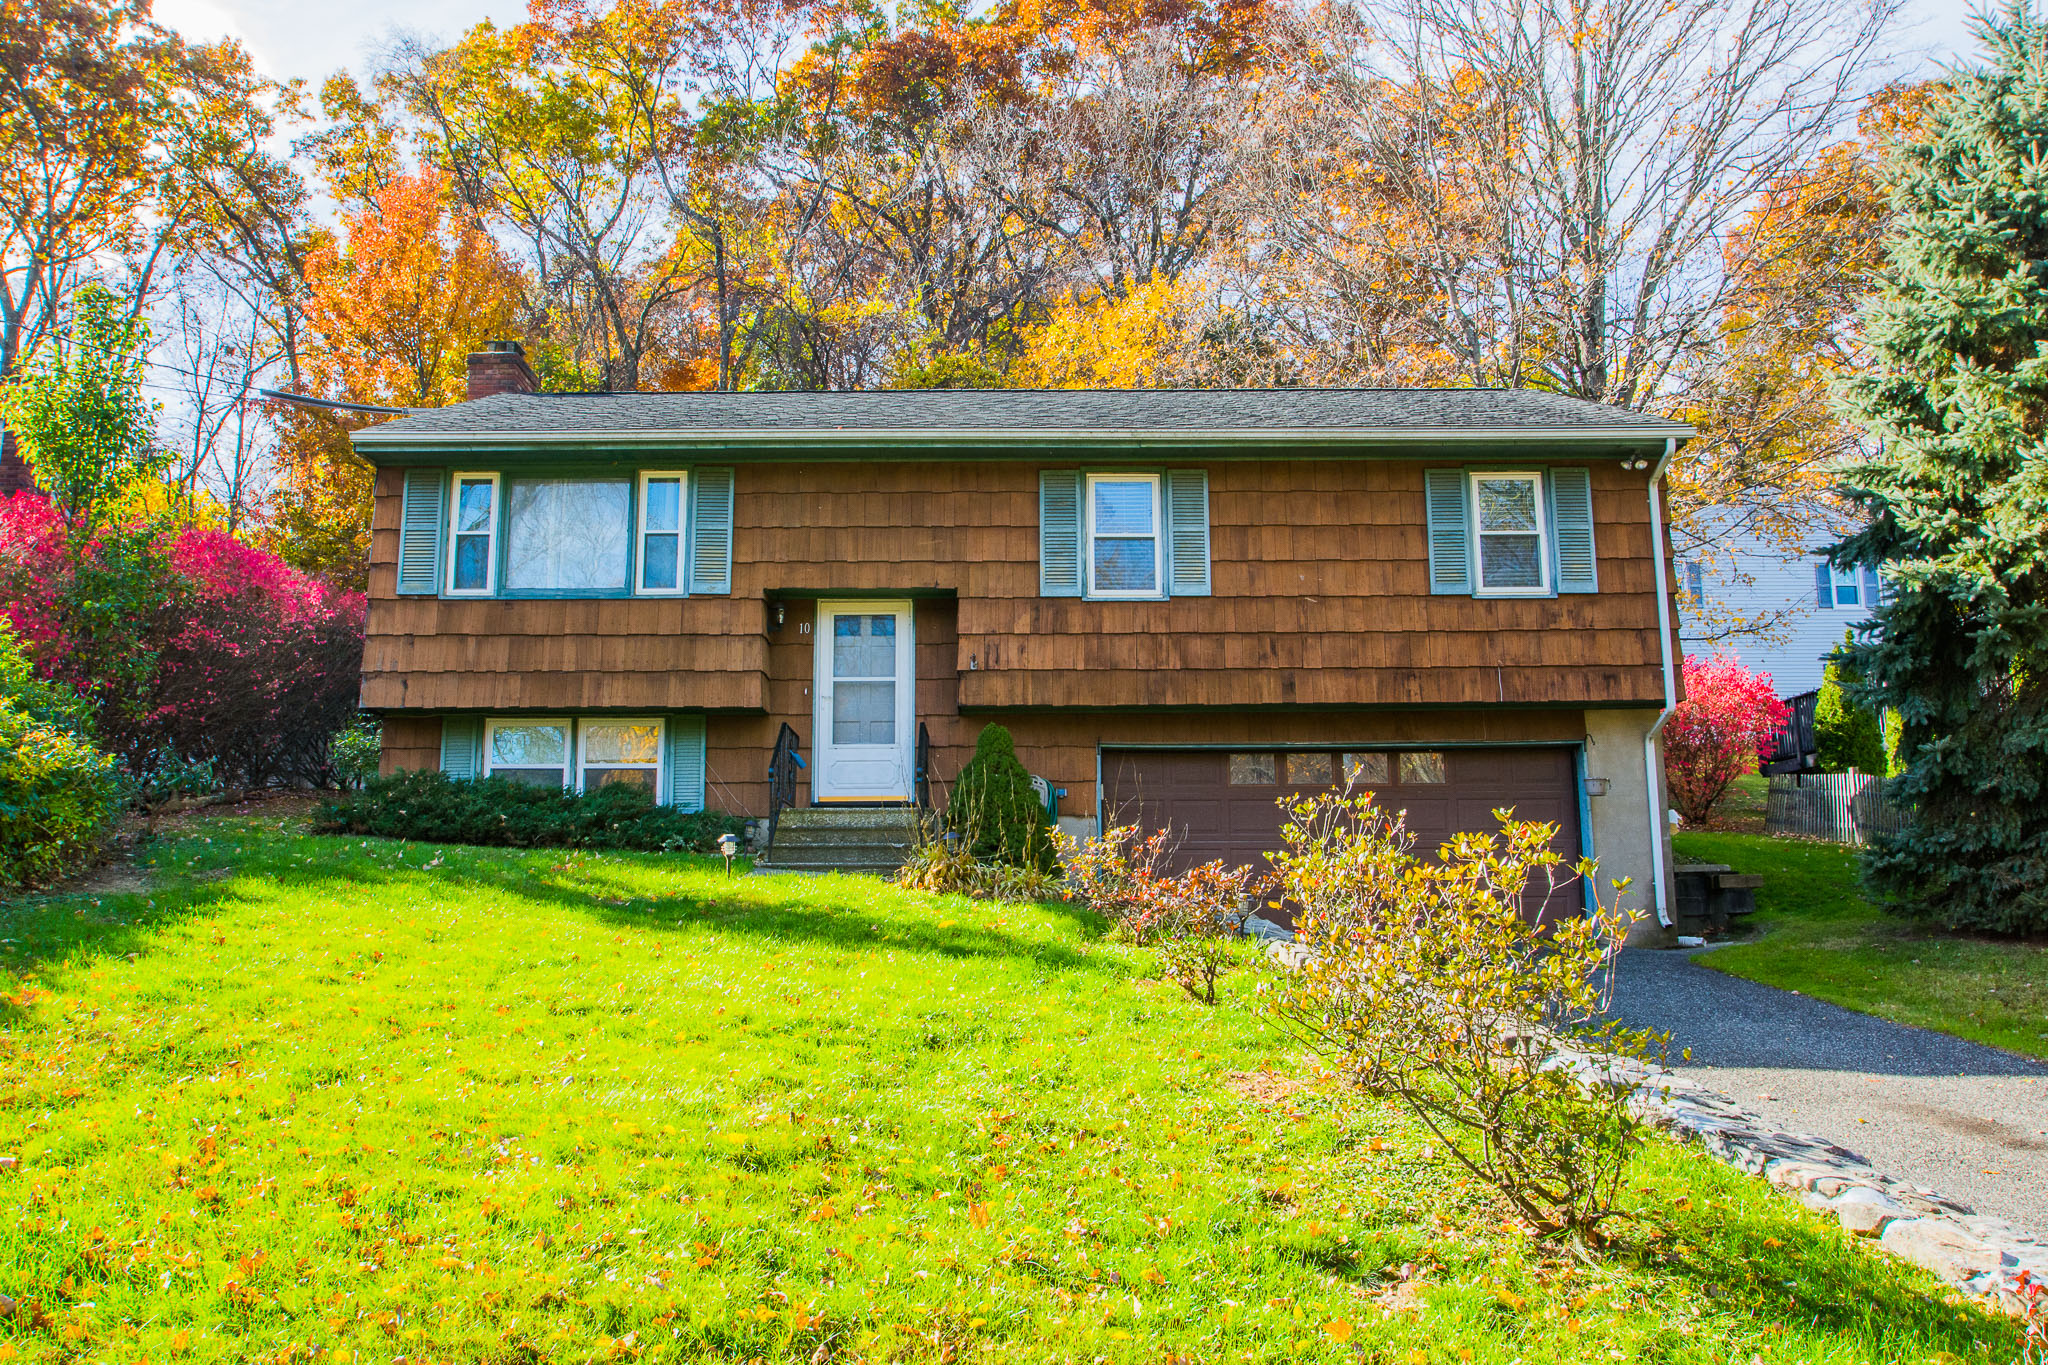 Single Family Home for Sale at Cul-De-Sac Street Near Candlewood Lake 10 Valley Road Danbury, Connecticut, 06811 United States